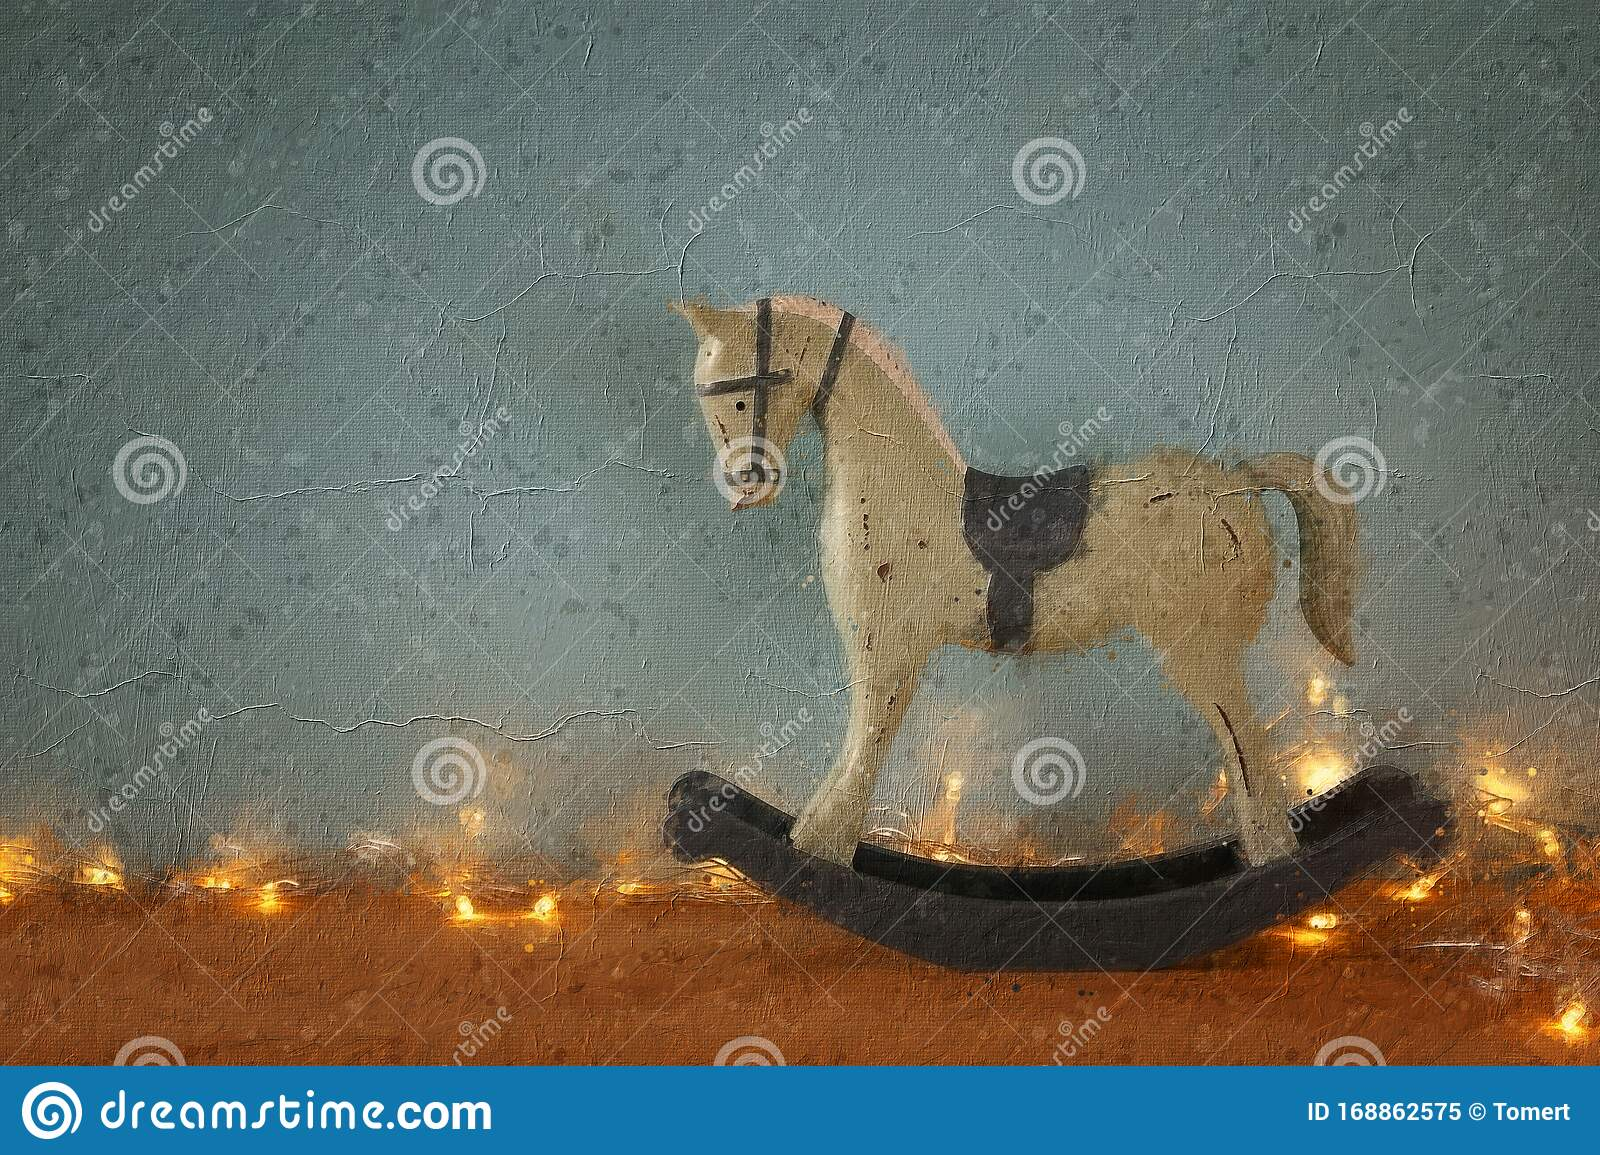 Oil Painting Style Illustration Of Vintage Rocking Horse On Wooden Floor Stock Image Image Of Brush Decoration 168862575